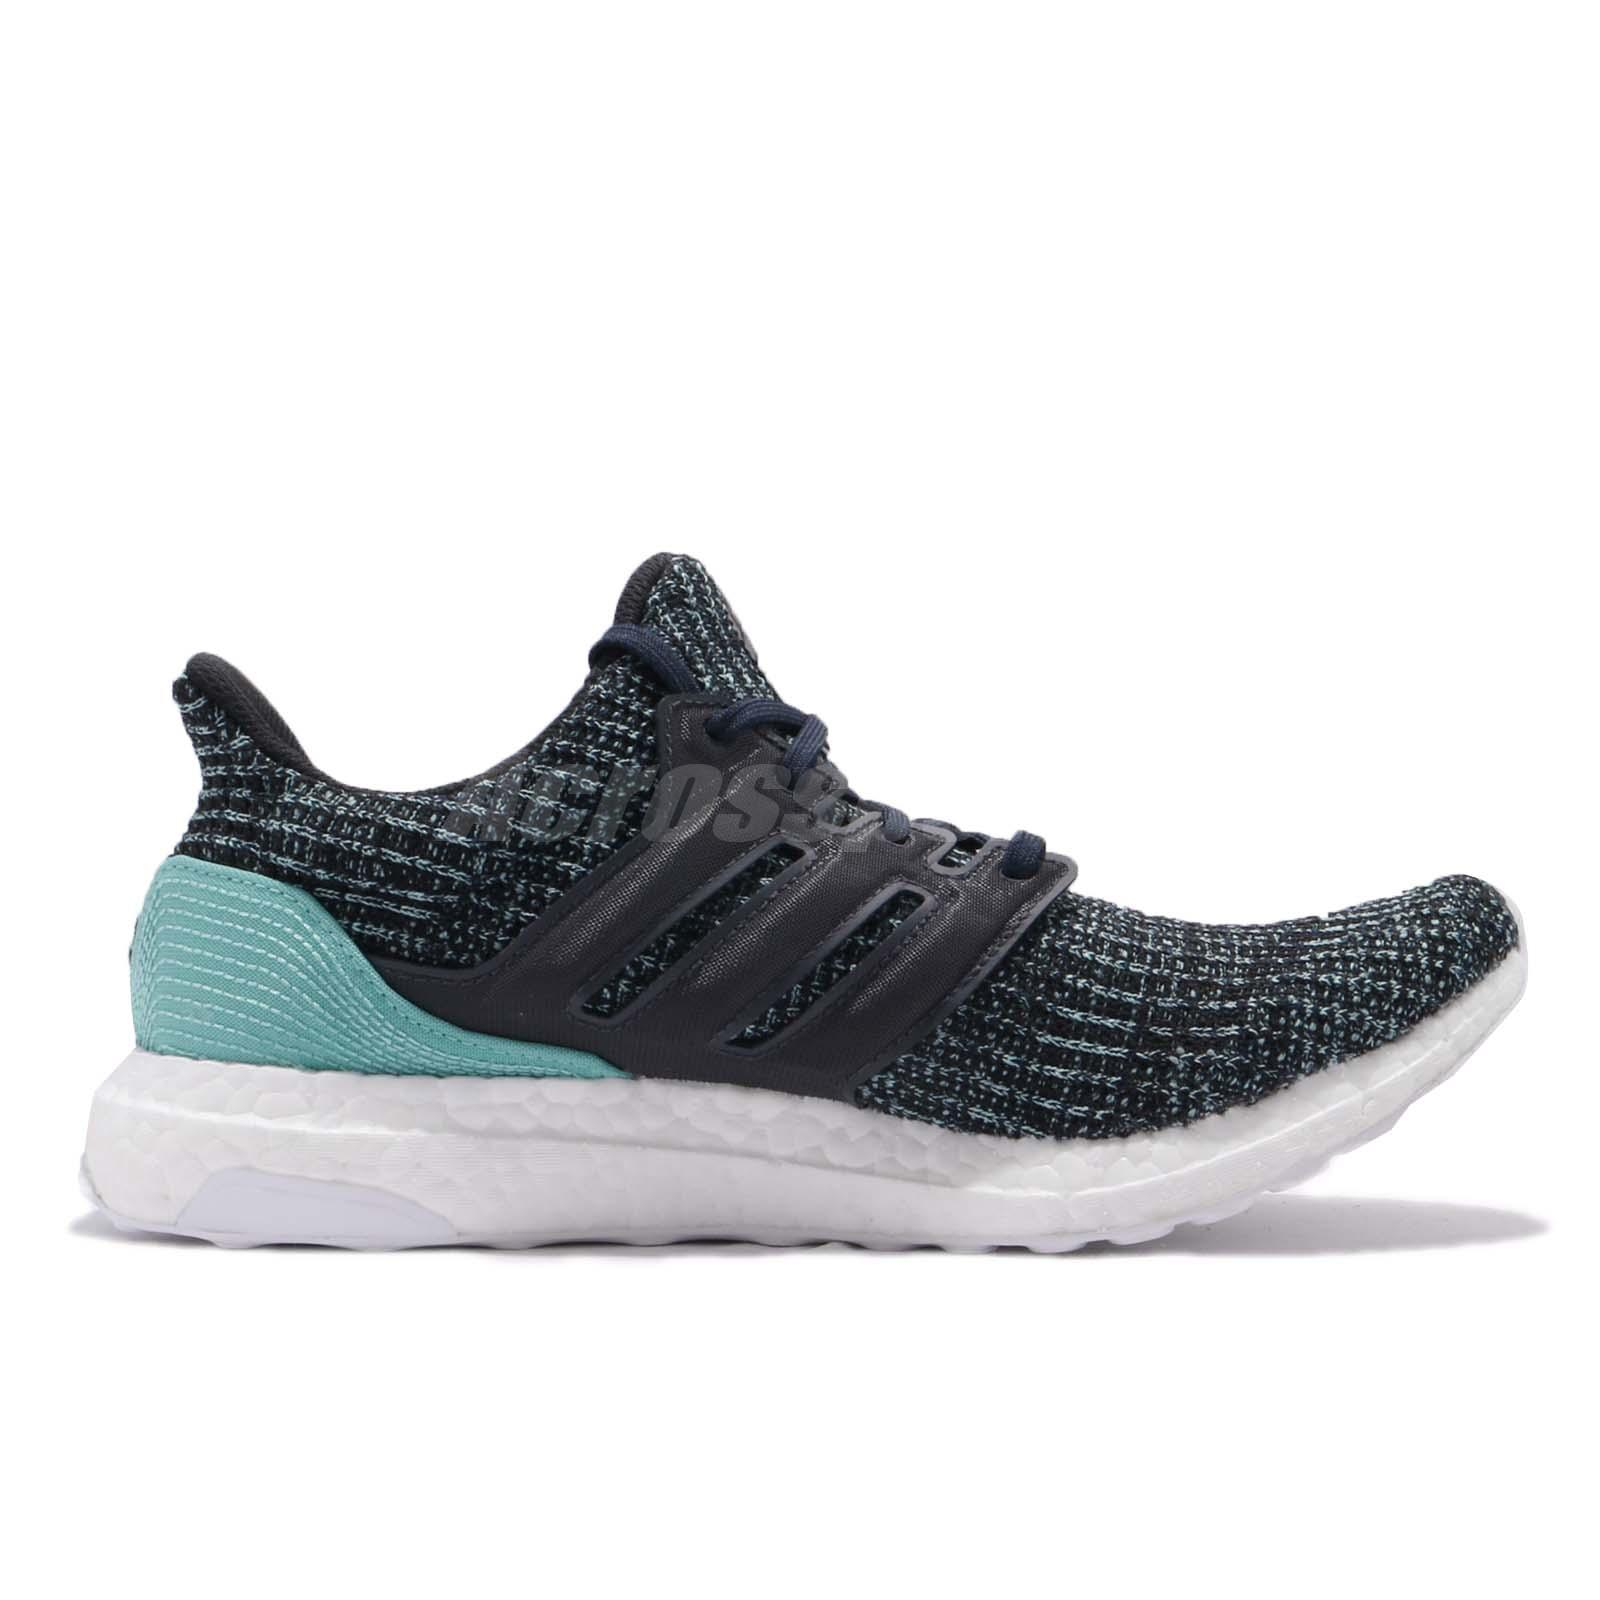 the best attitude 9a3e4 fc02d Details about adidas UltraBOOST PARLEY For The Oceans Green Grey Men Carbon  Running CG3673